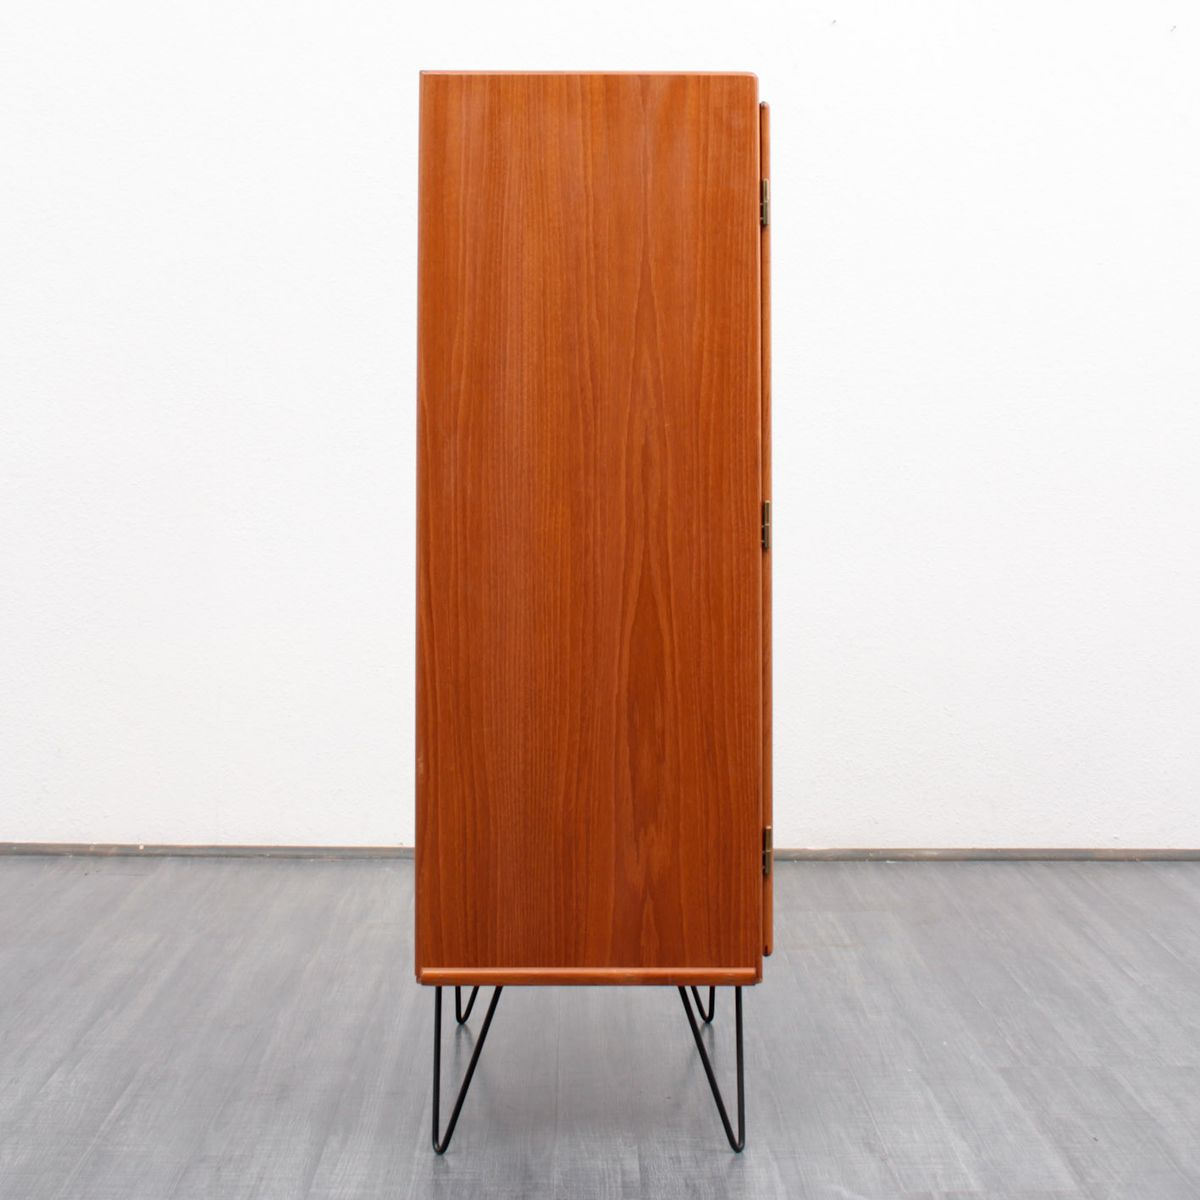 Marvelous photograph of Scandinavian Style Teak Cabinet 1960s for sale at Pamono with #963B10 color and 1200x1200 pixels